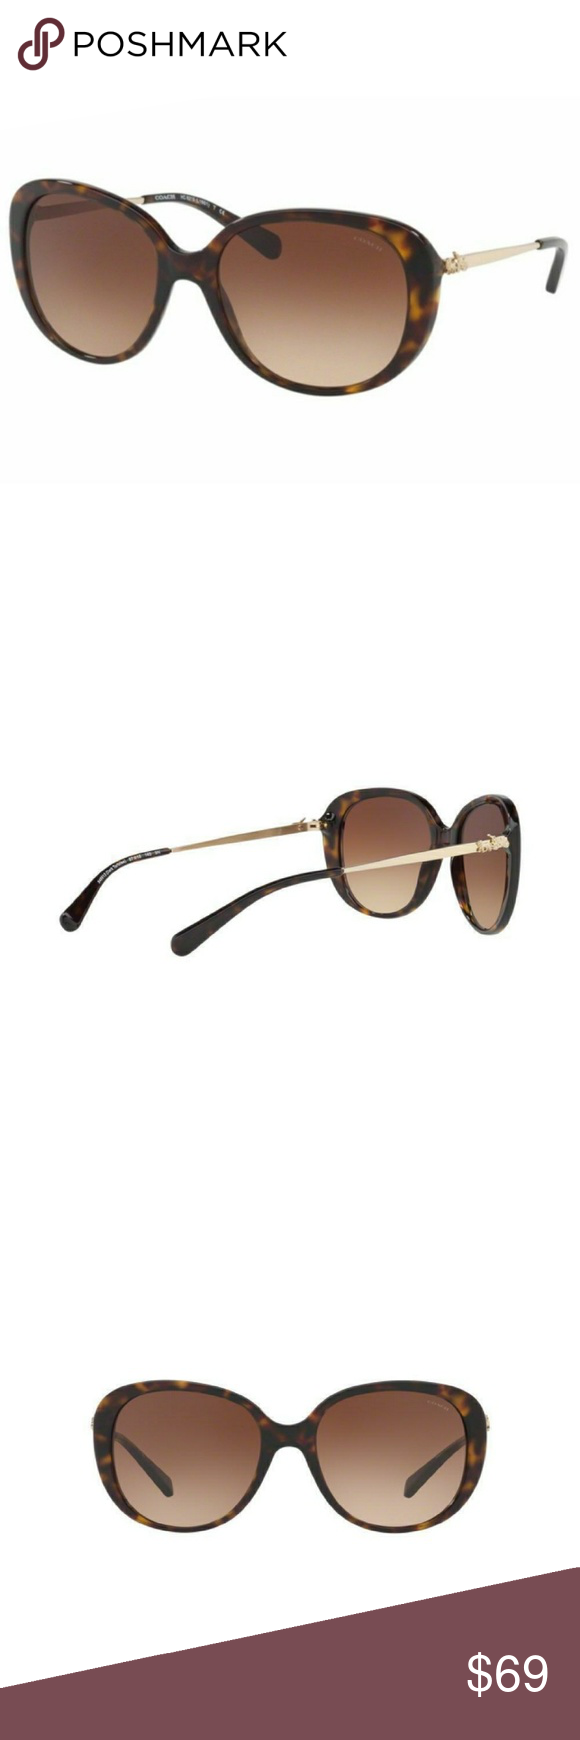 872a1a6b092b New Coach ladies sunglasses New Authentic ladies Coach Sunglasses. Frames  are Dark Tortoise with Brown gradient lenses. Sunglasses feature Coach  horse and ...